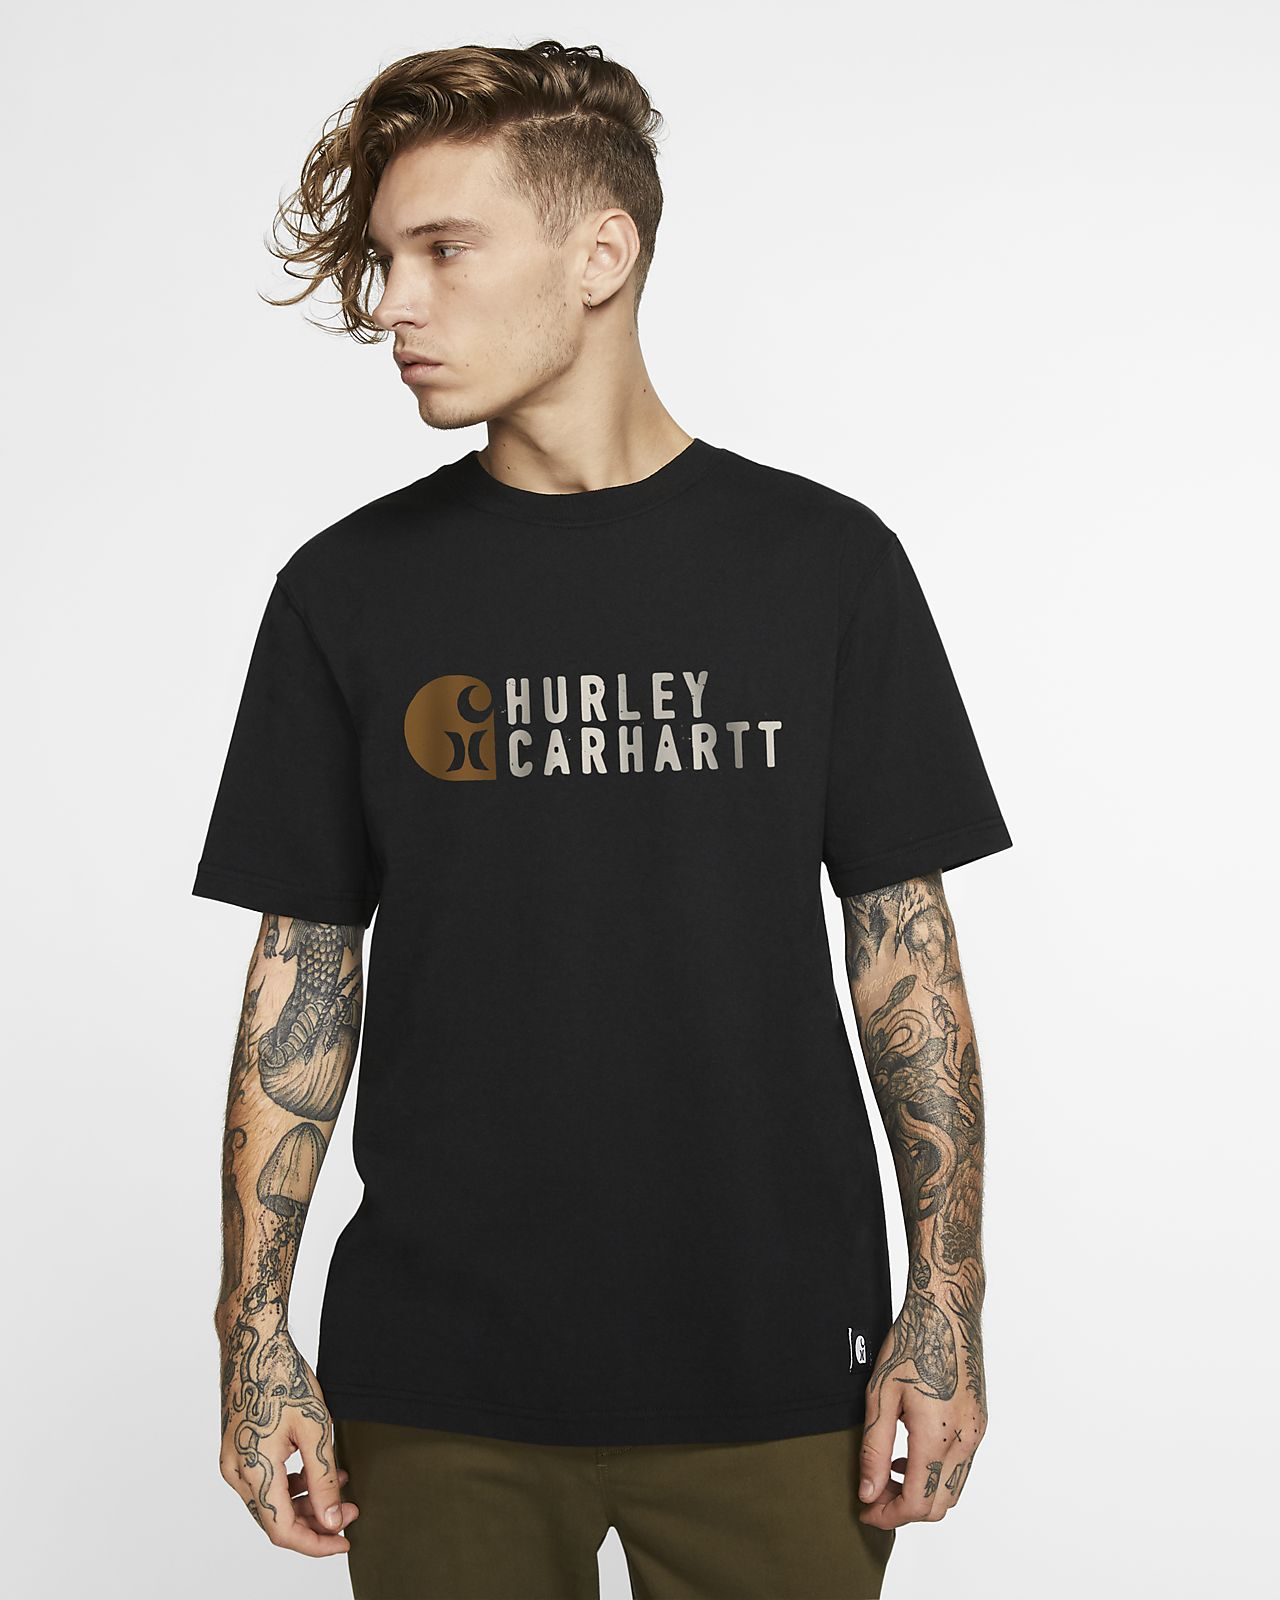 Hurley x Carhartt Stacked Men's Premium Fit T-Shirt